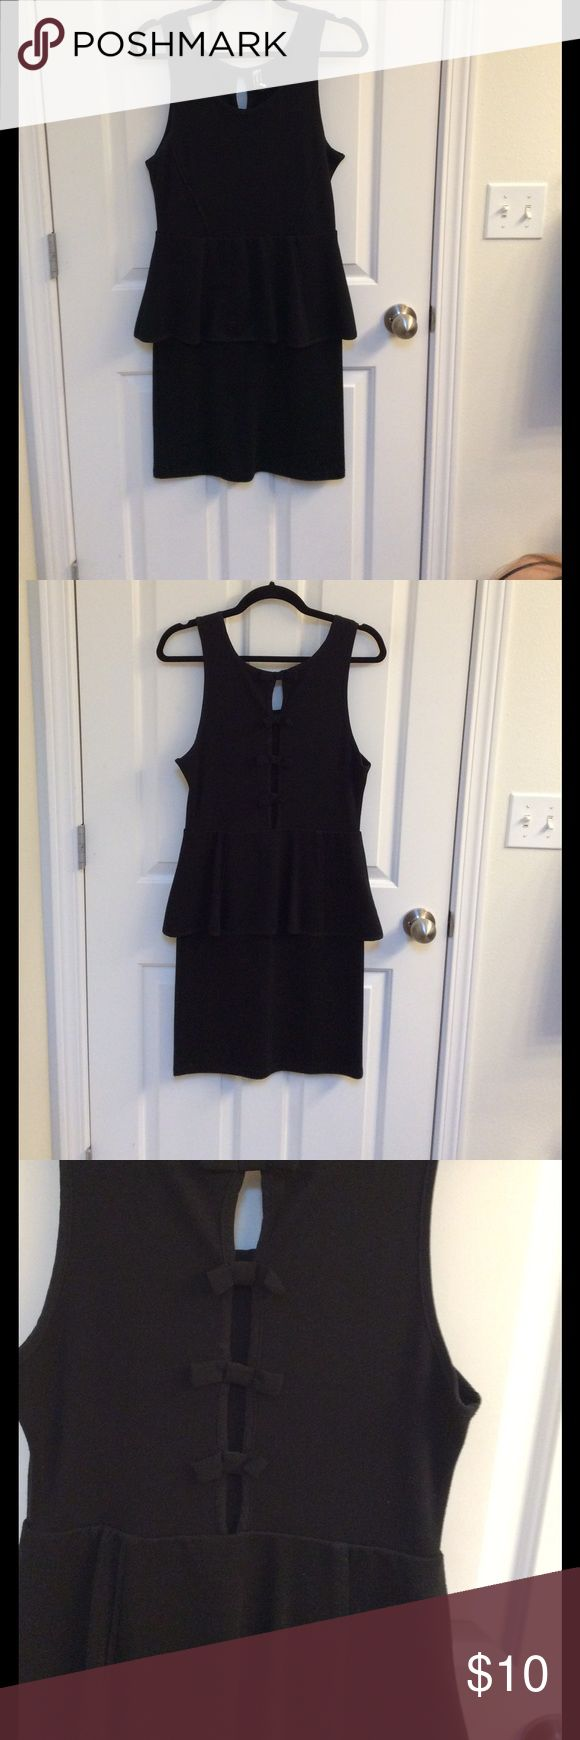 Woman's Poof Couture black cocktail dress size L Woman's Poof Couture cocktail dress in size Large, color is black, back side has an opening with four bow ties. No stains or tears, good used condition! Poof Couture  Dresses Mini